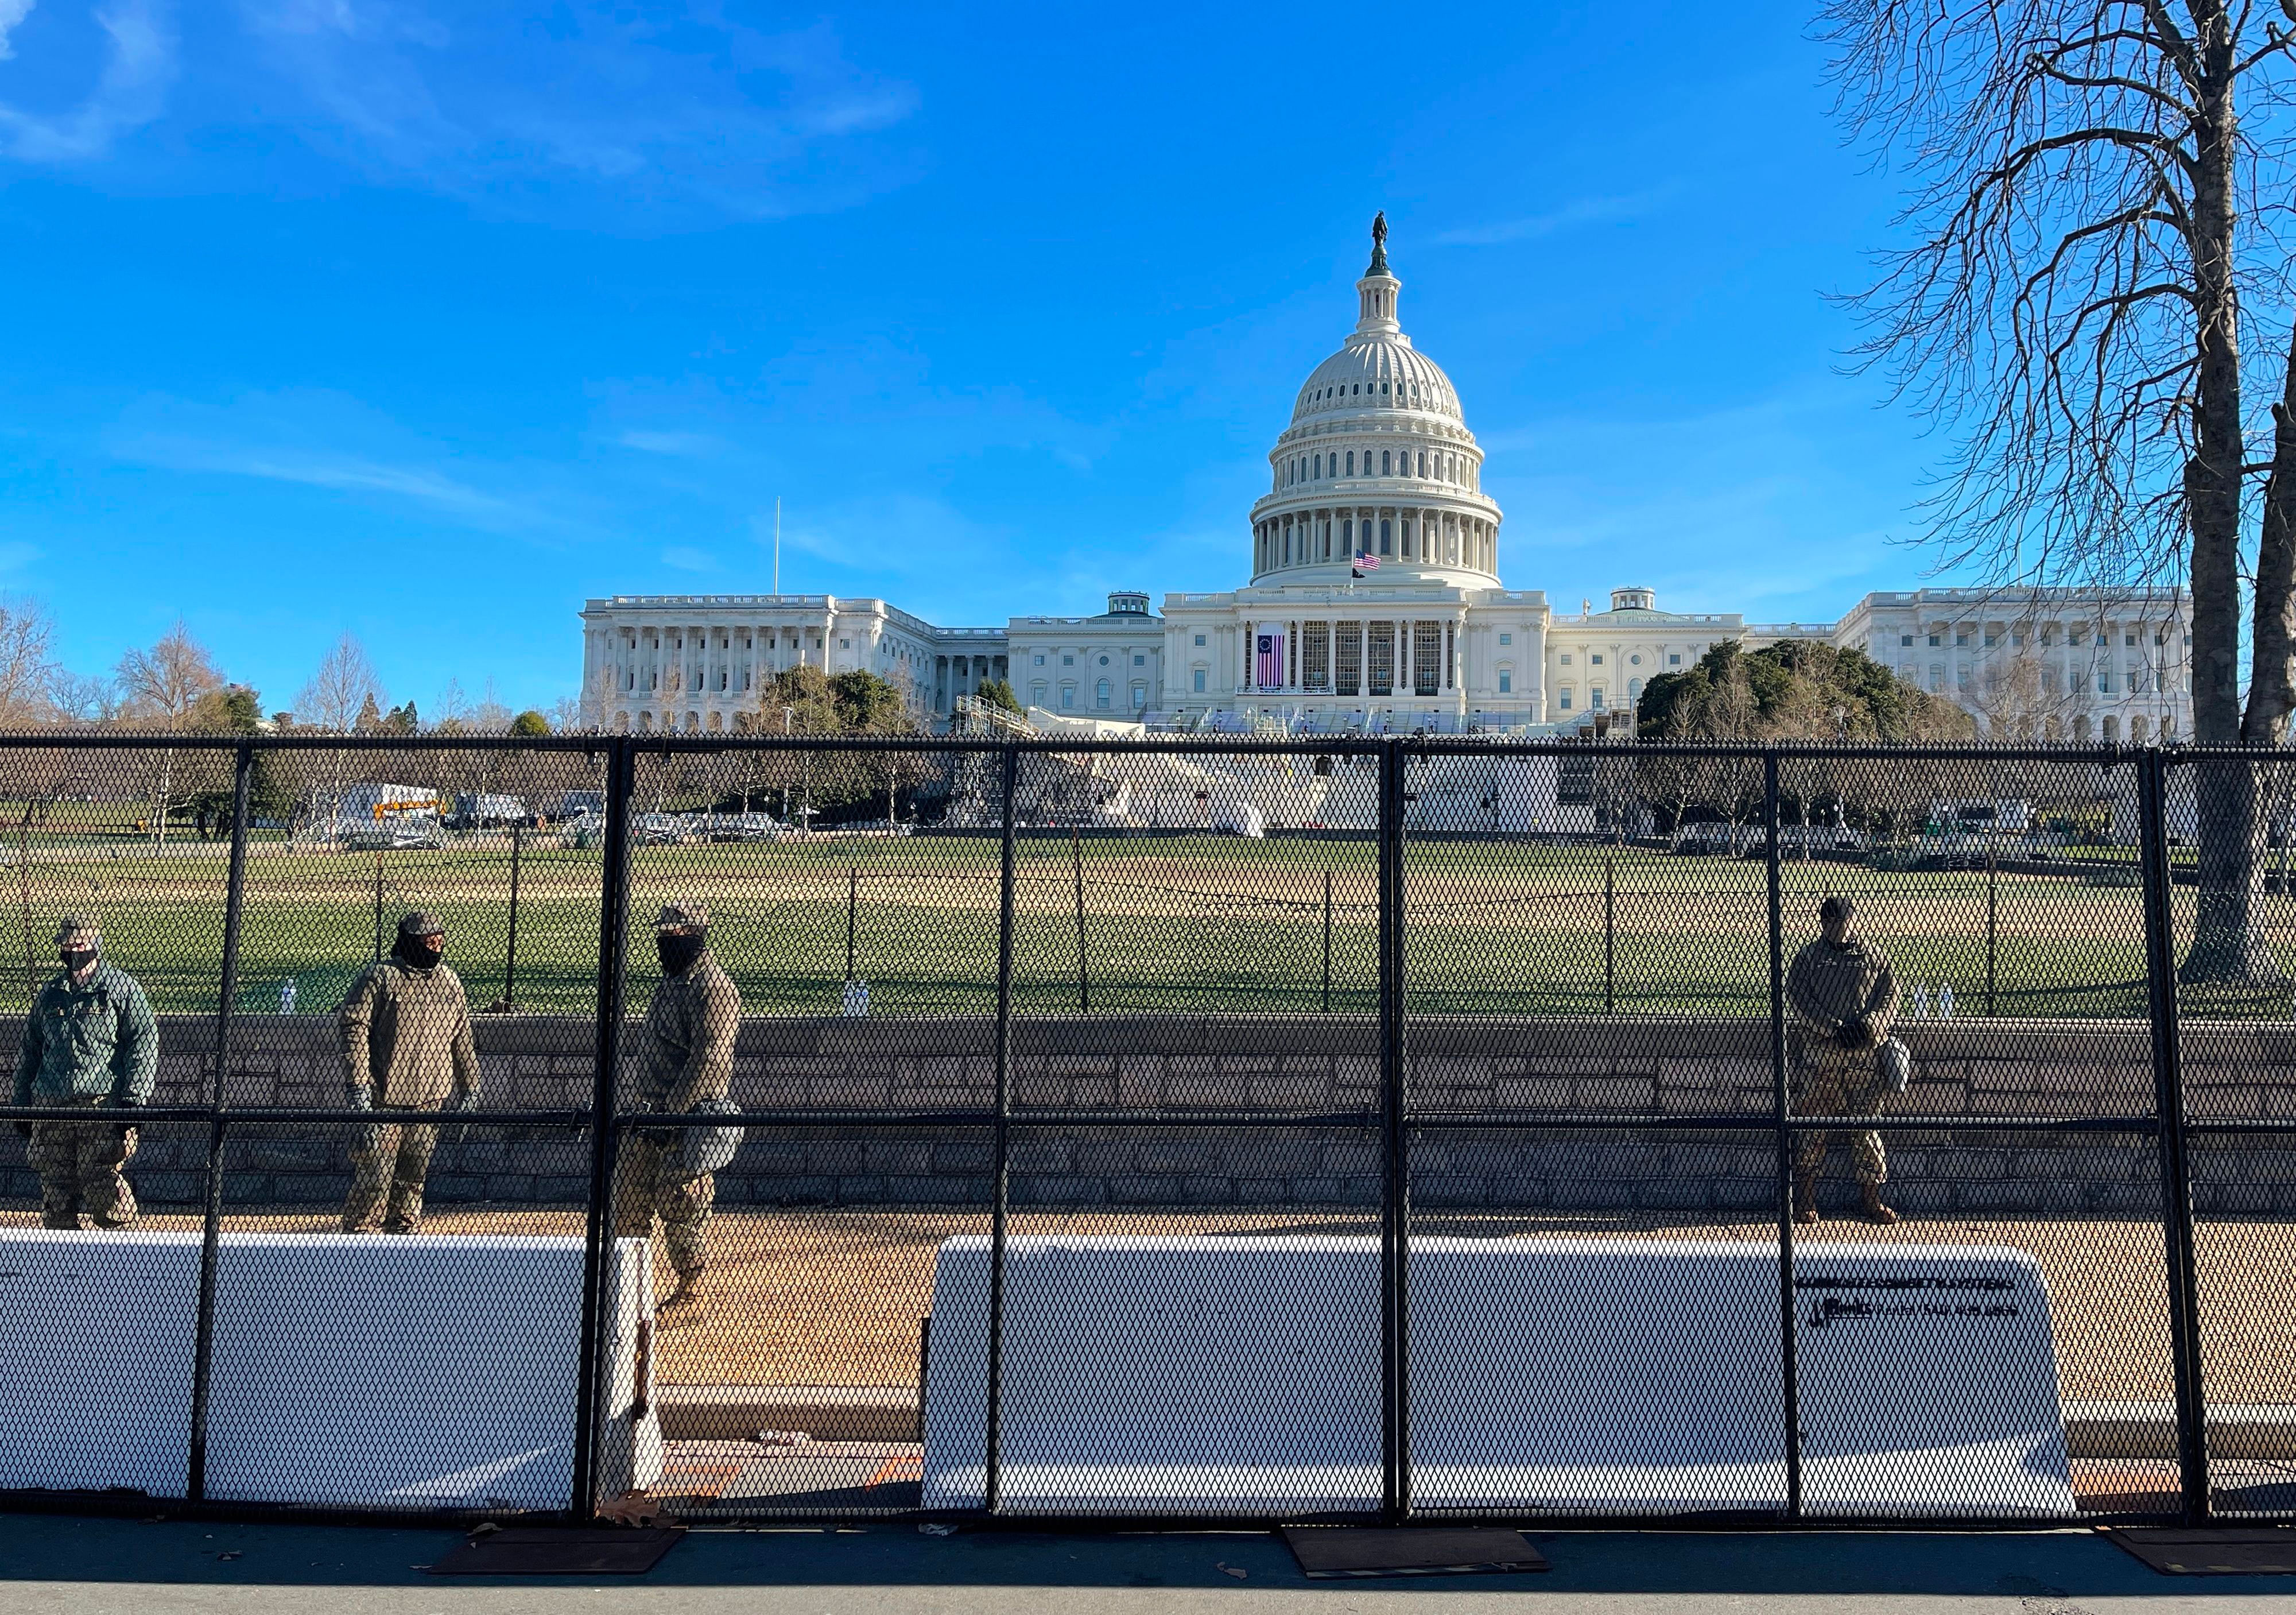 National Guard soldiers stand behind a security fence near the Capitol on January 9.